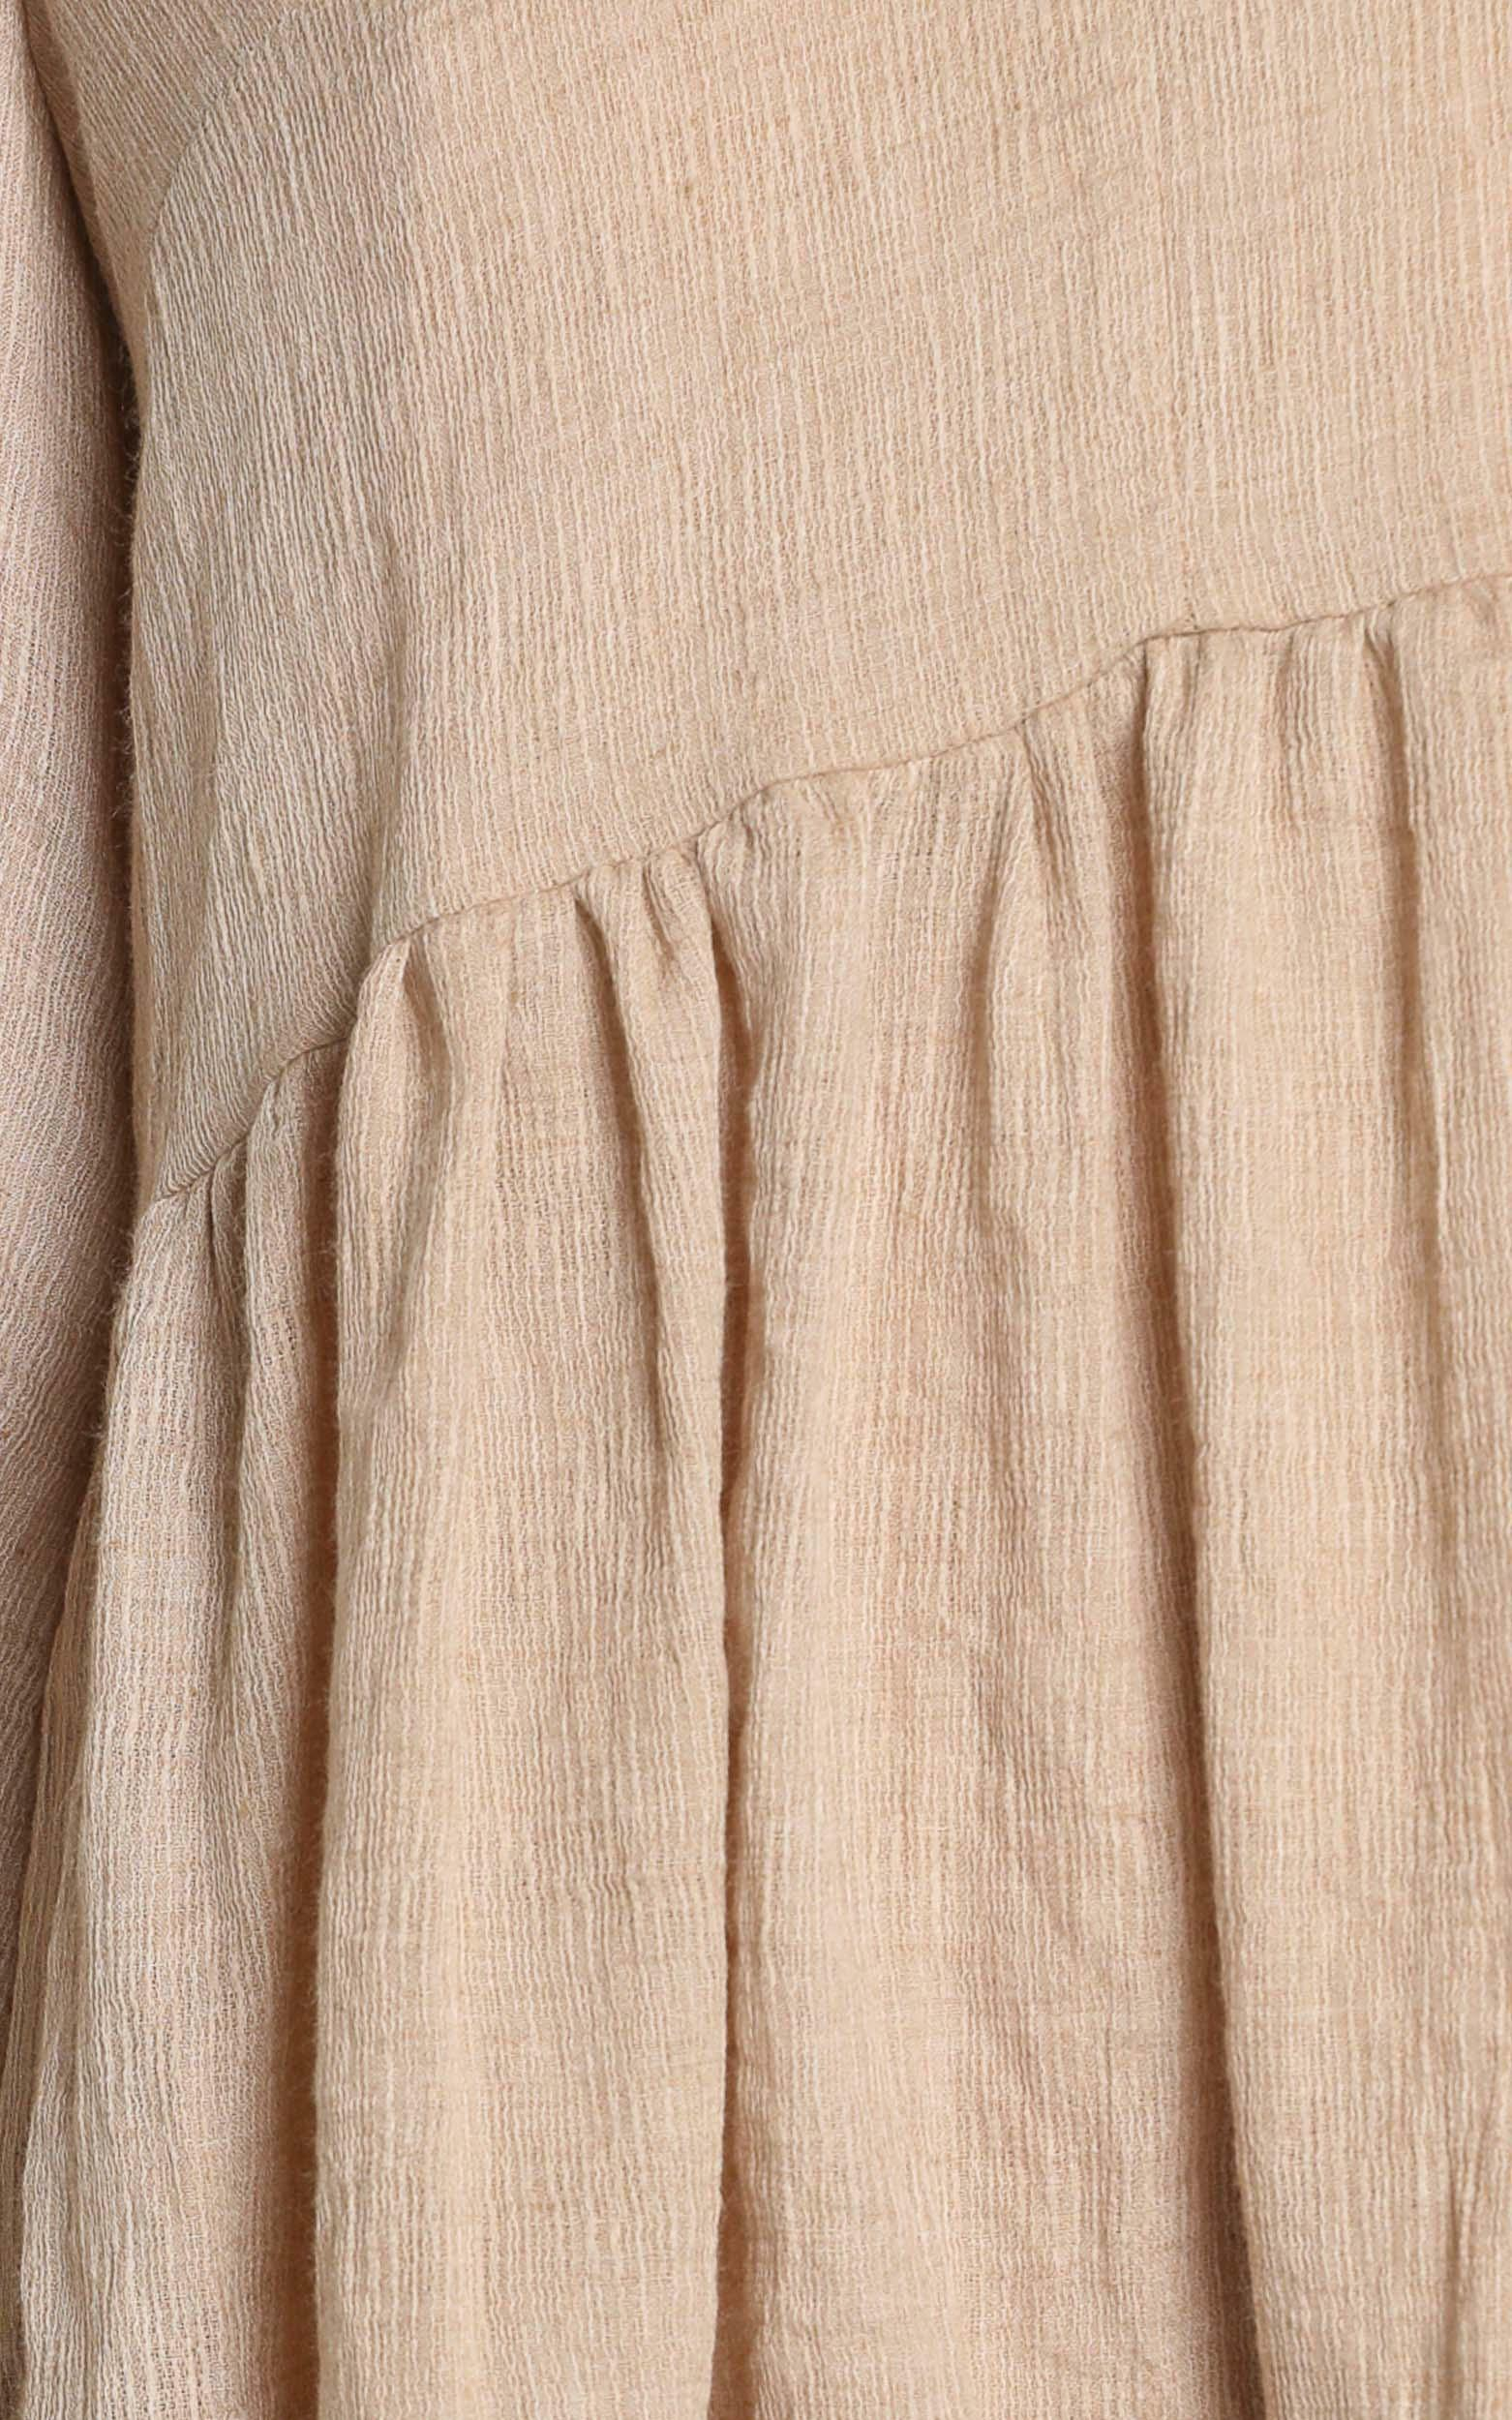 Carys Dress in Mocha - 6 (XS), Mocha, hi-res image number null